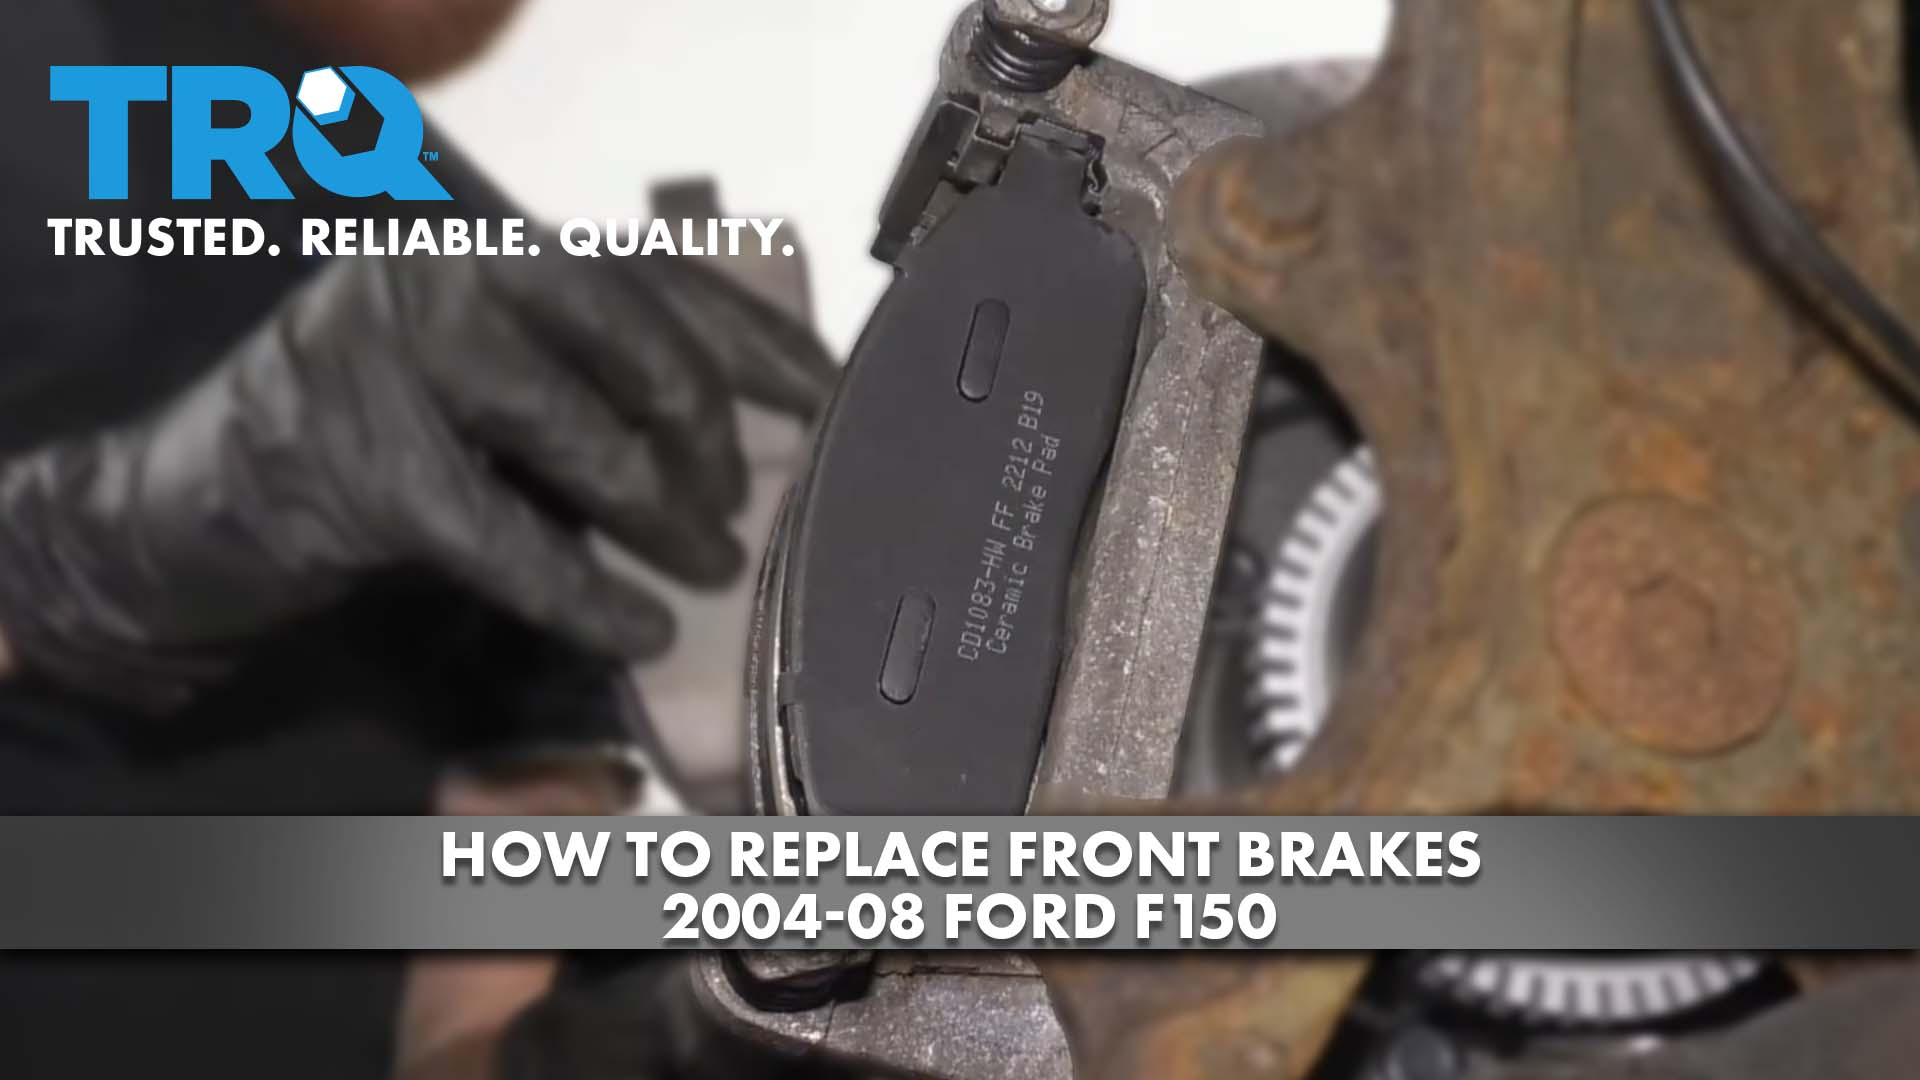 How to Replace Front Brakes 2004-08 Ford F150